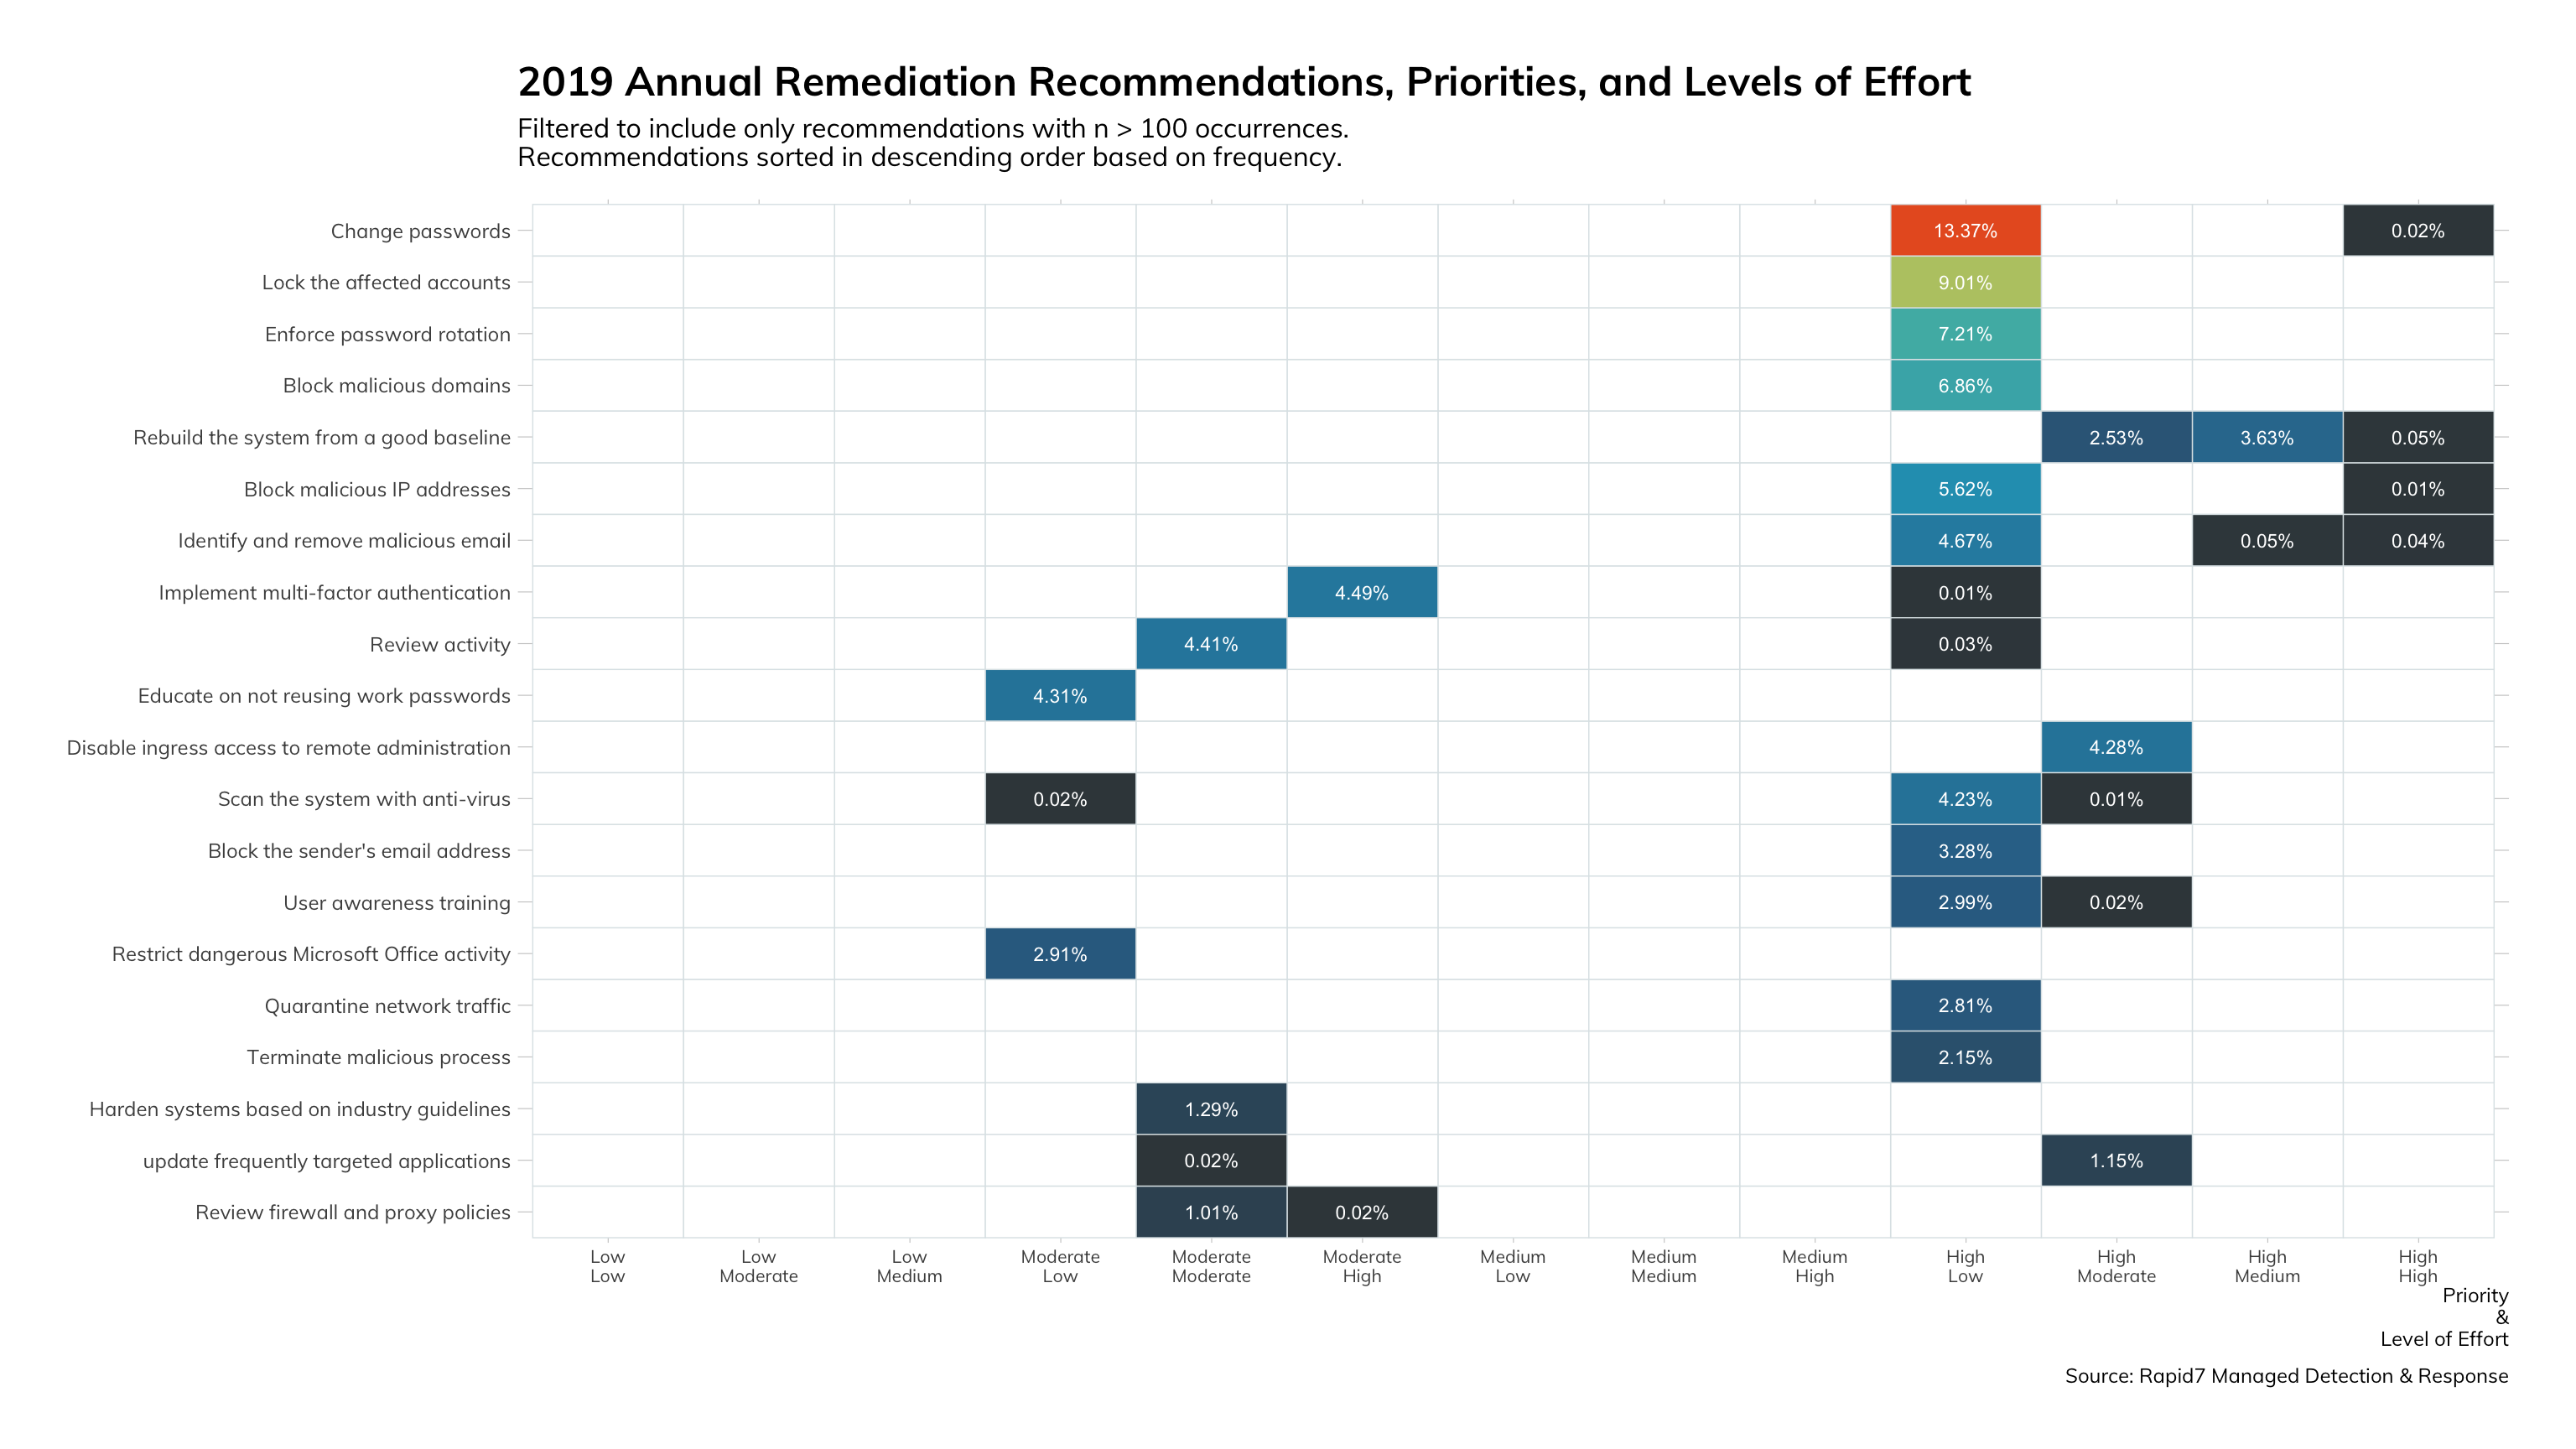 Figure 19: 2019 Annual Remediation Recommendations, Priorities, and Levels of Effort